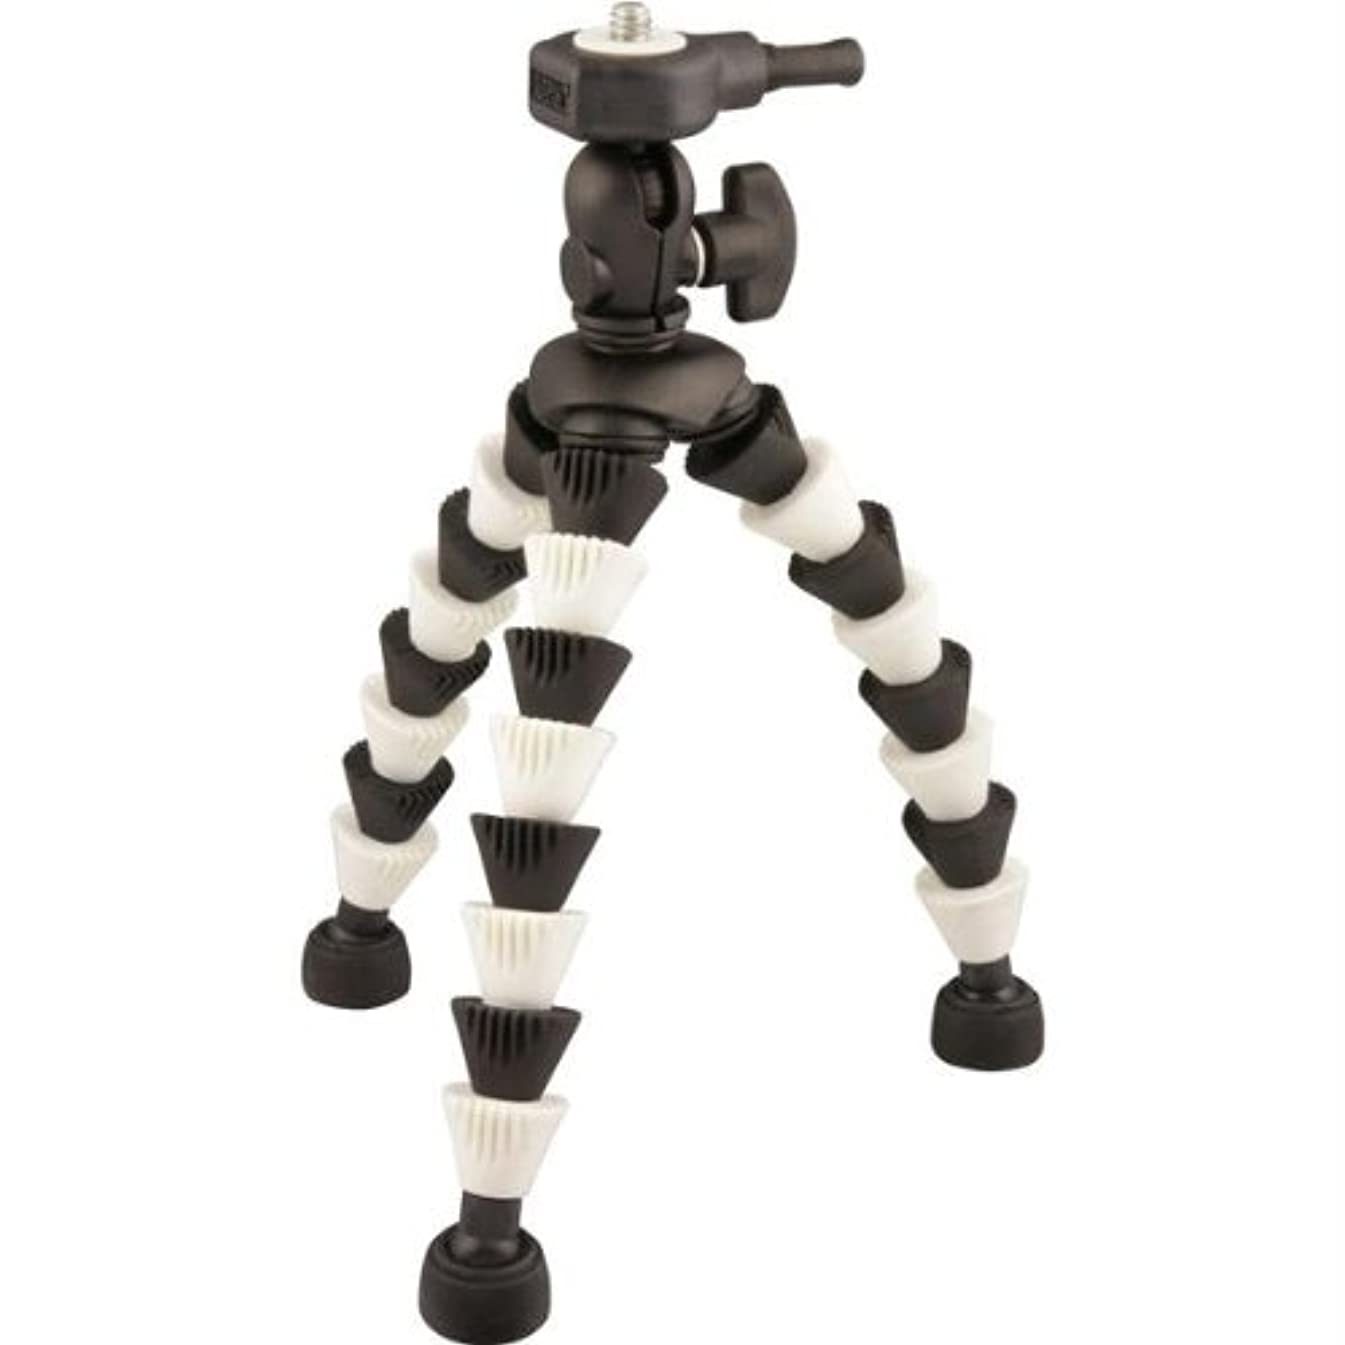 Black/White Flexpod Gripper Tripod With Ball Head Nique Aluminum Core Leg Design